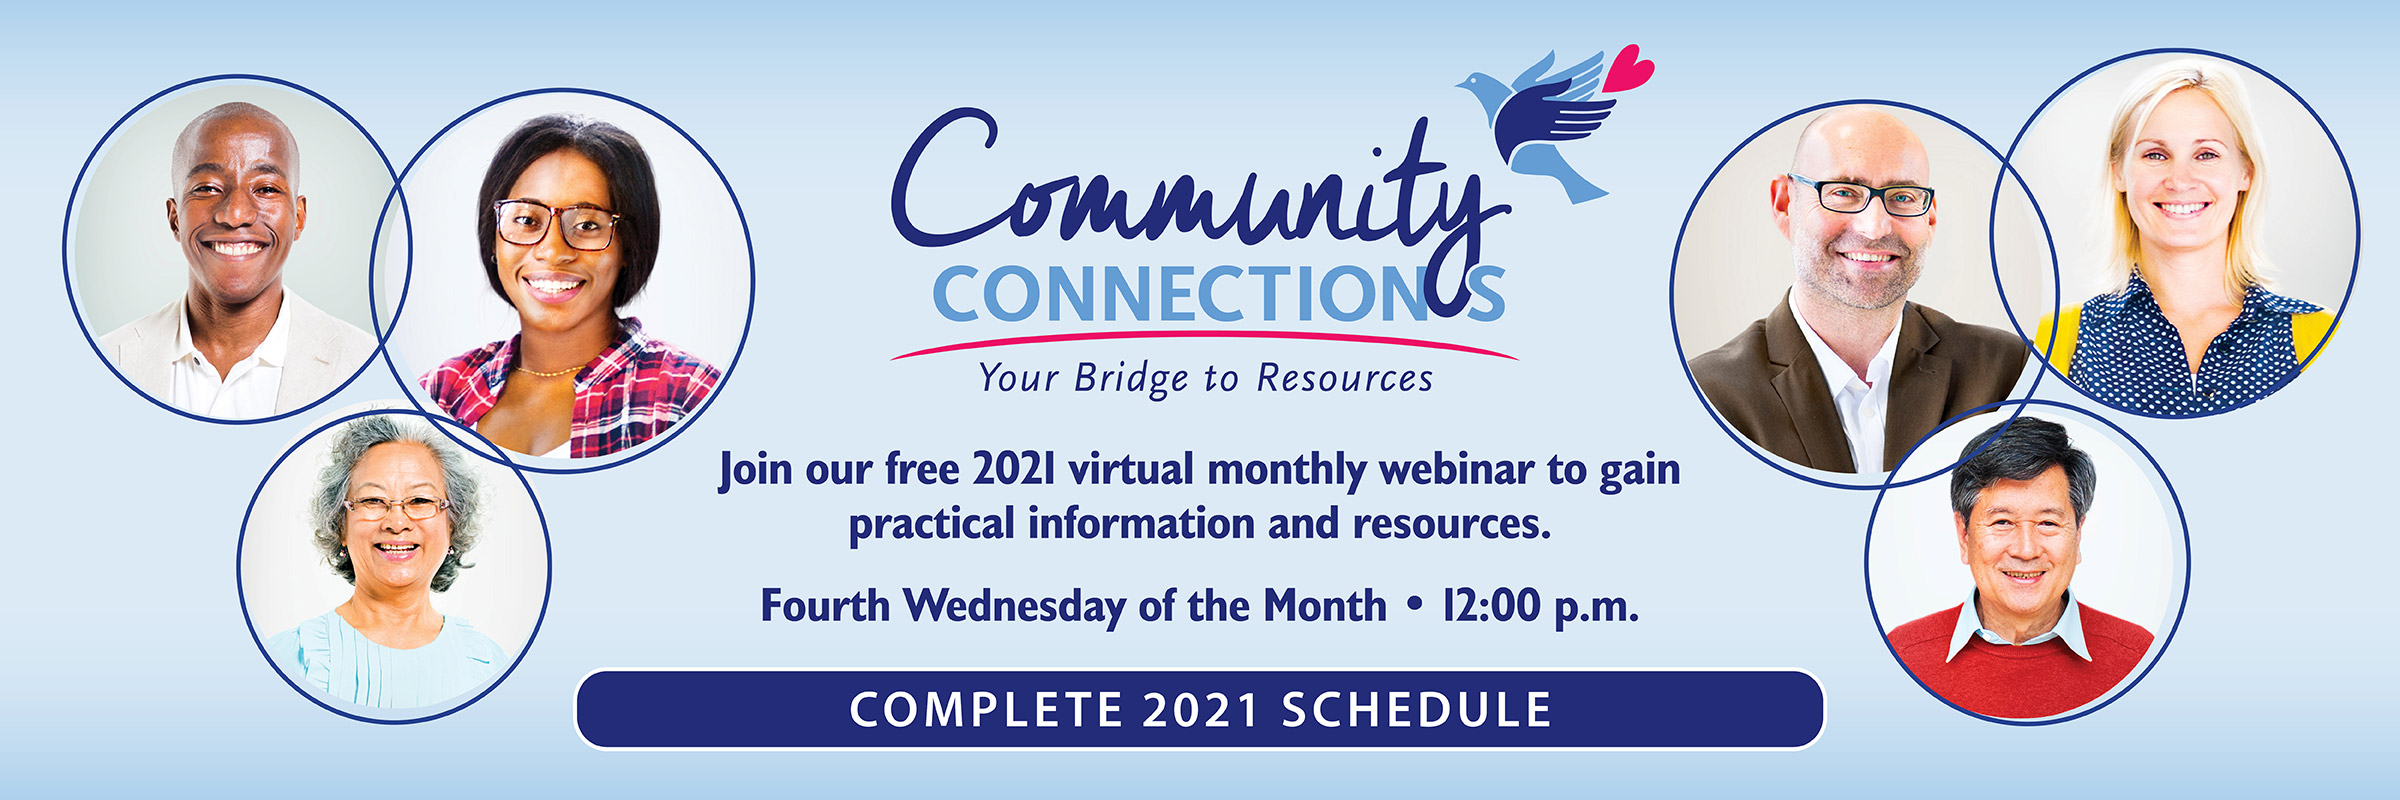 Community-Connections-Carousel-2021